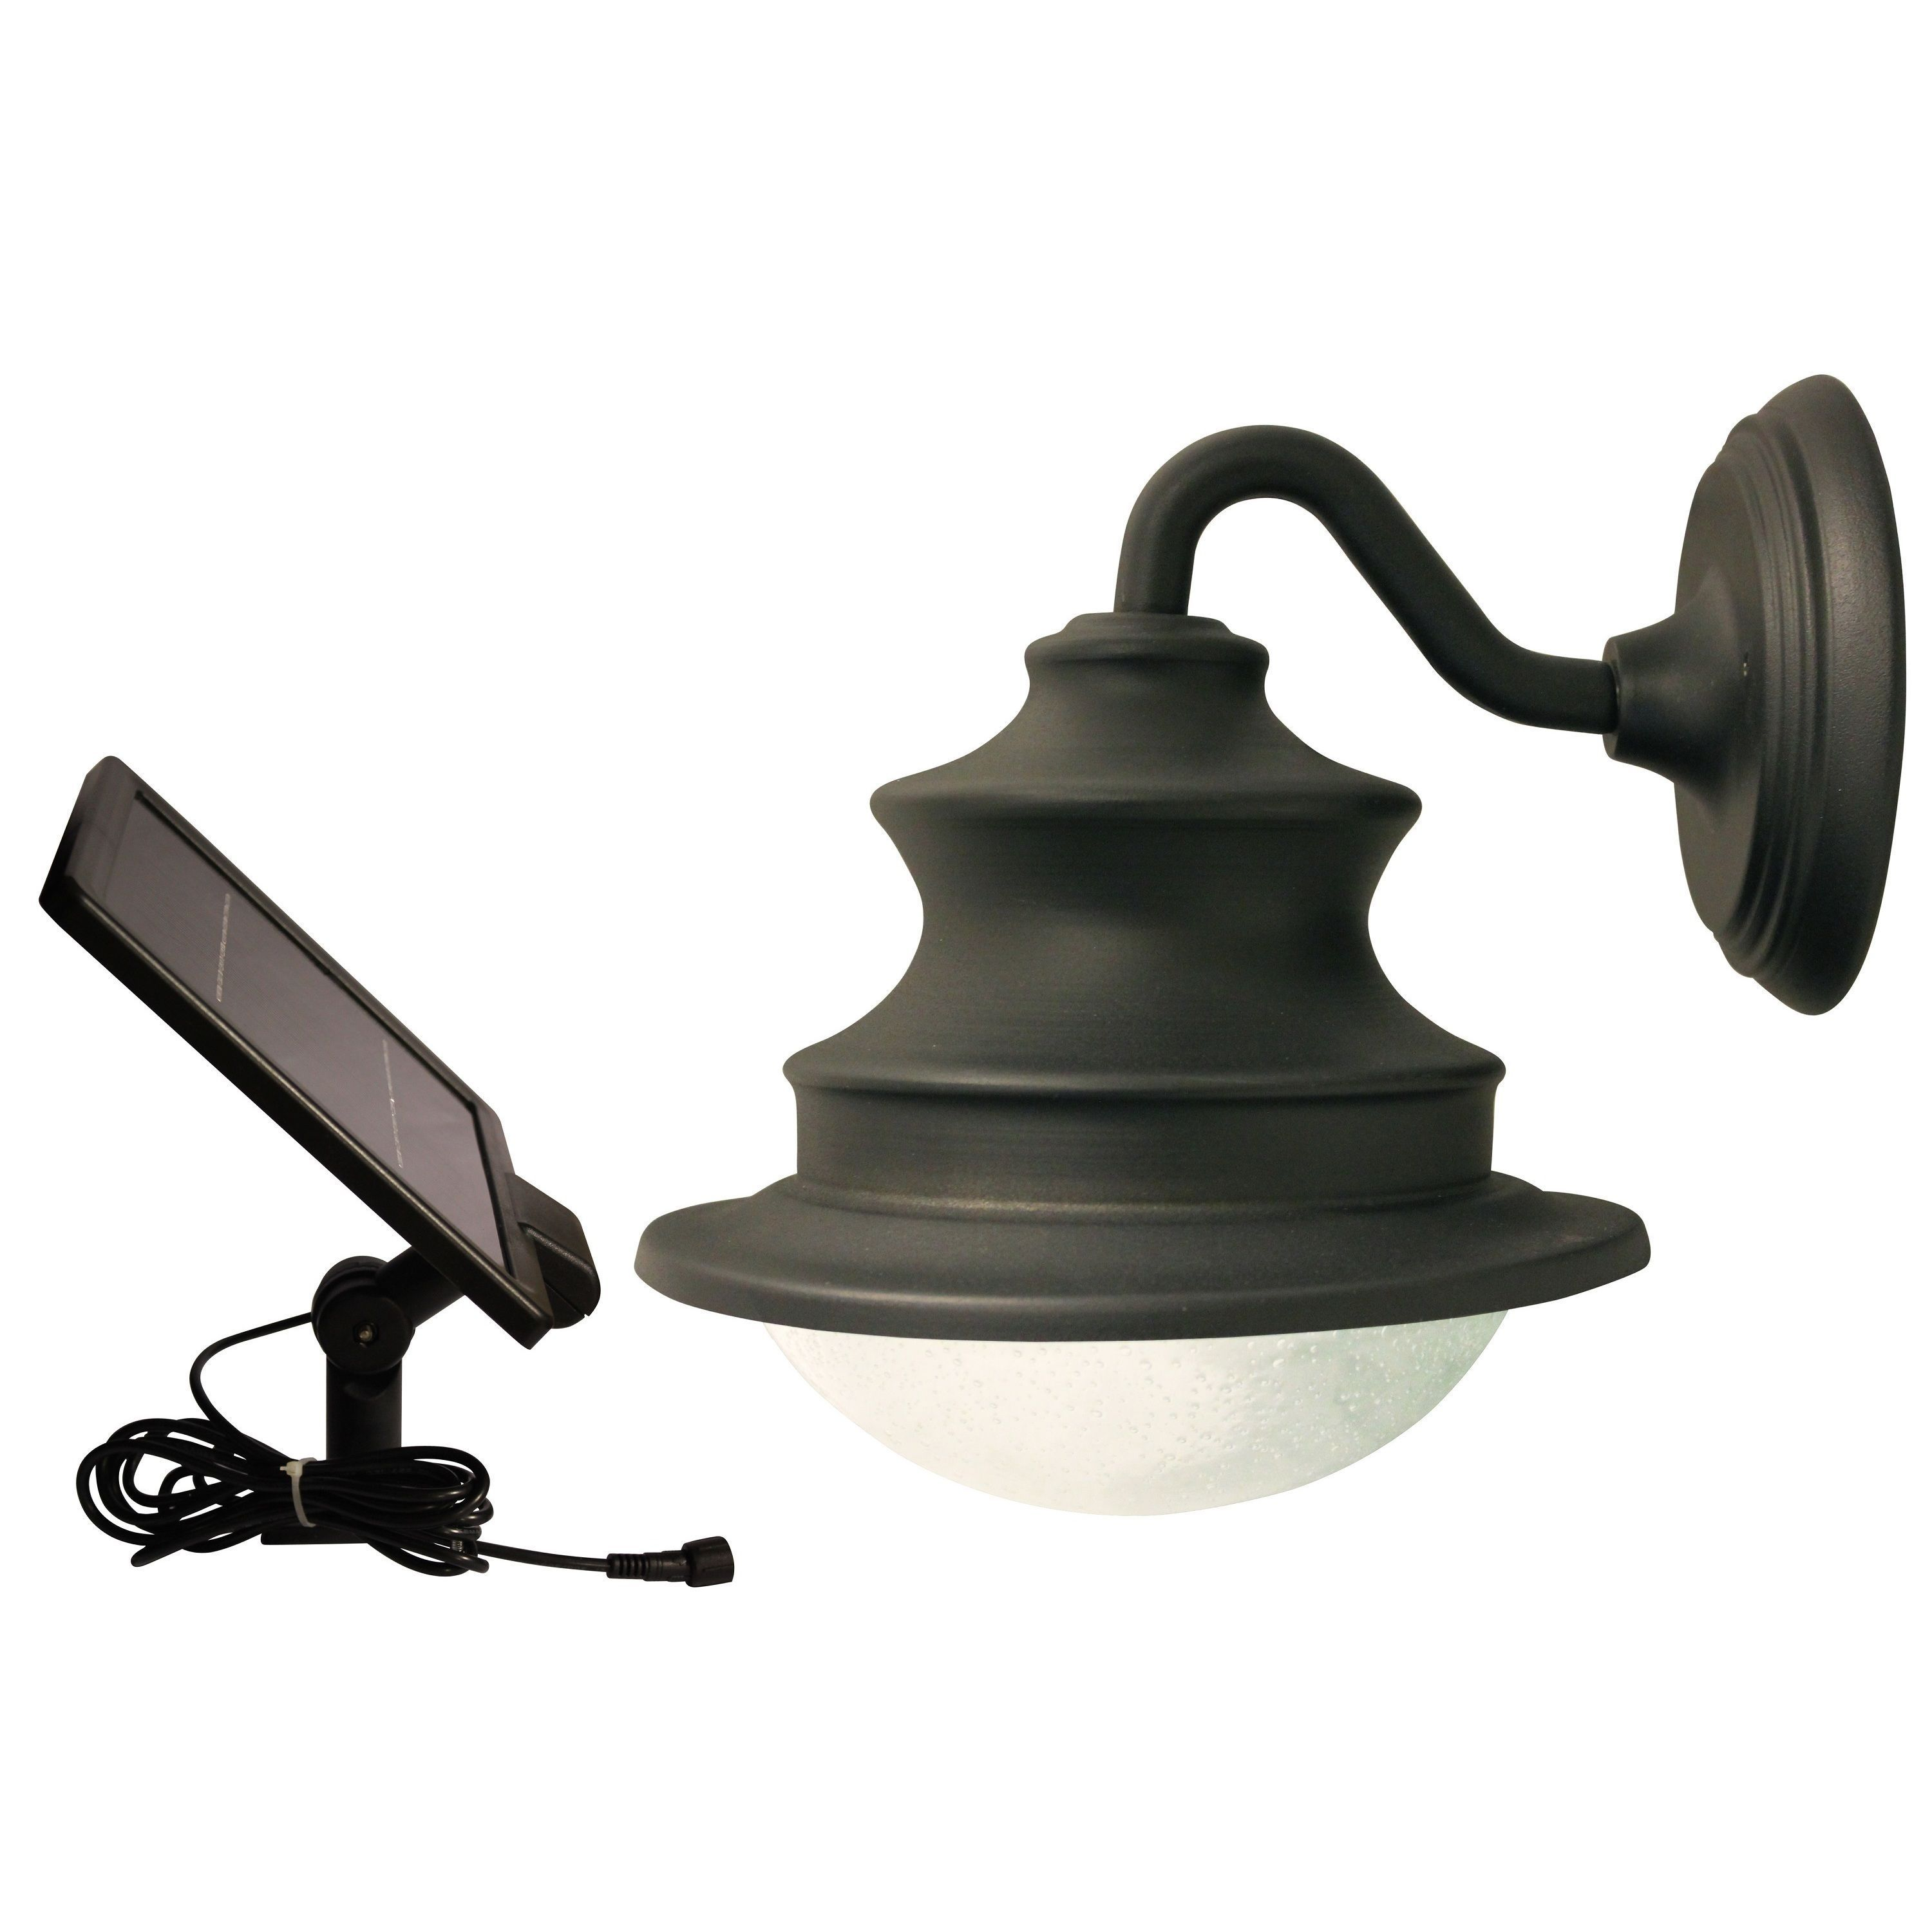 Outdoor Solar Light On A Gooseneck Sconce For Wall Mounting Has And 6 Bright White Leds That Output Eclairage Solaire Exterieur Lampes Solaires Panneau Solaire